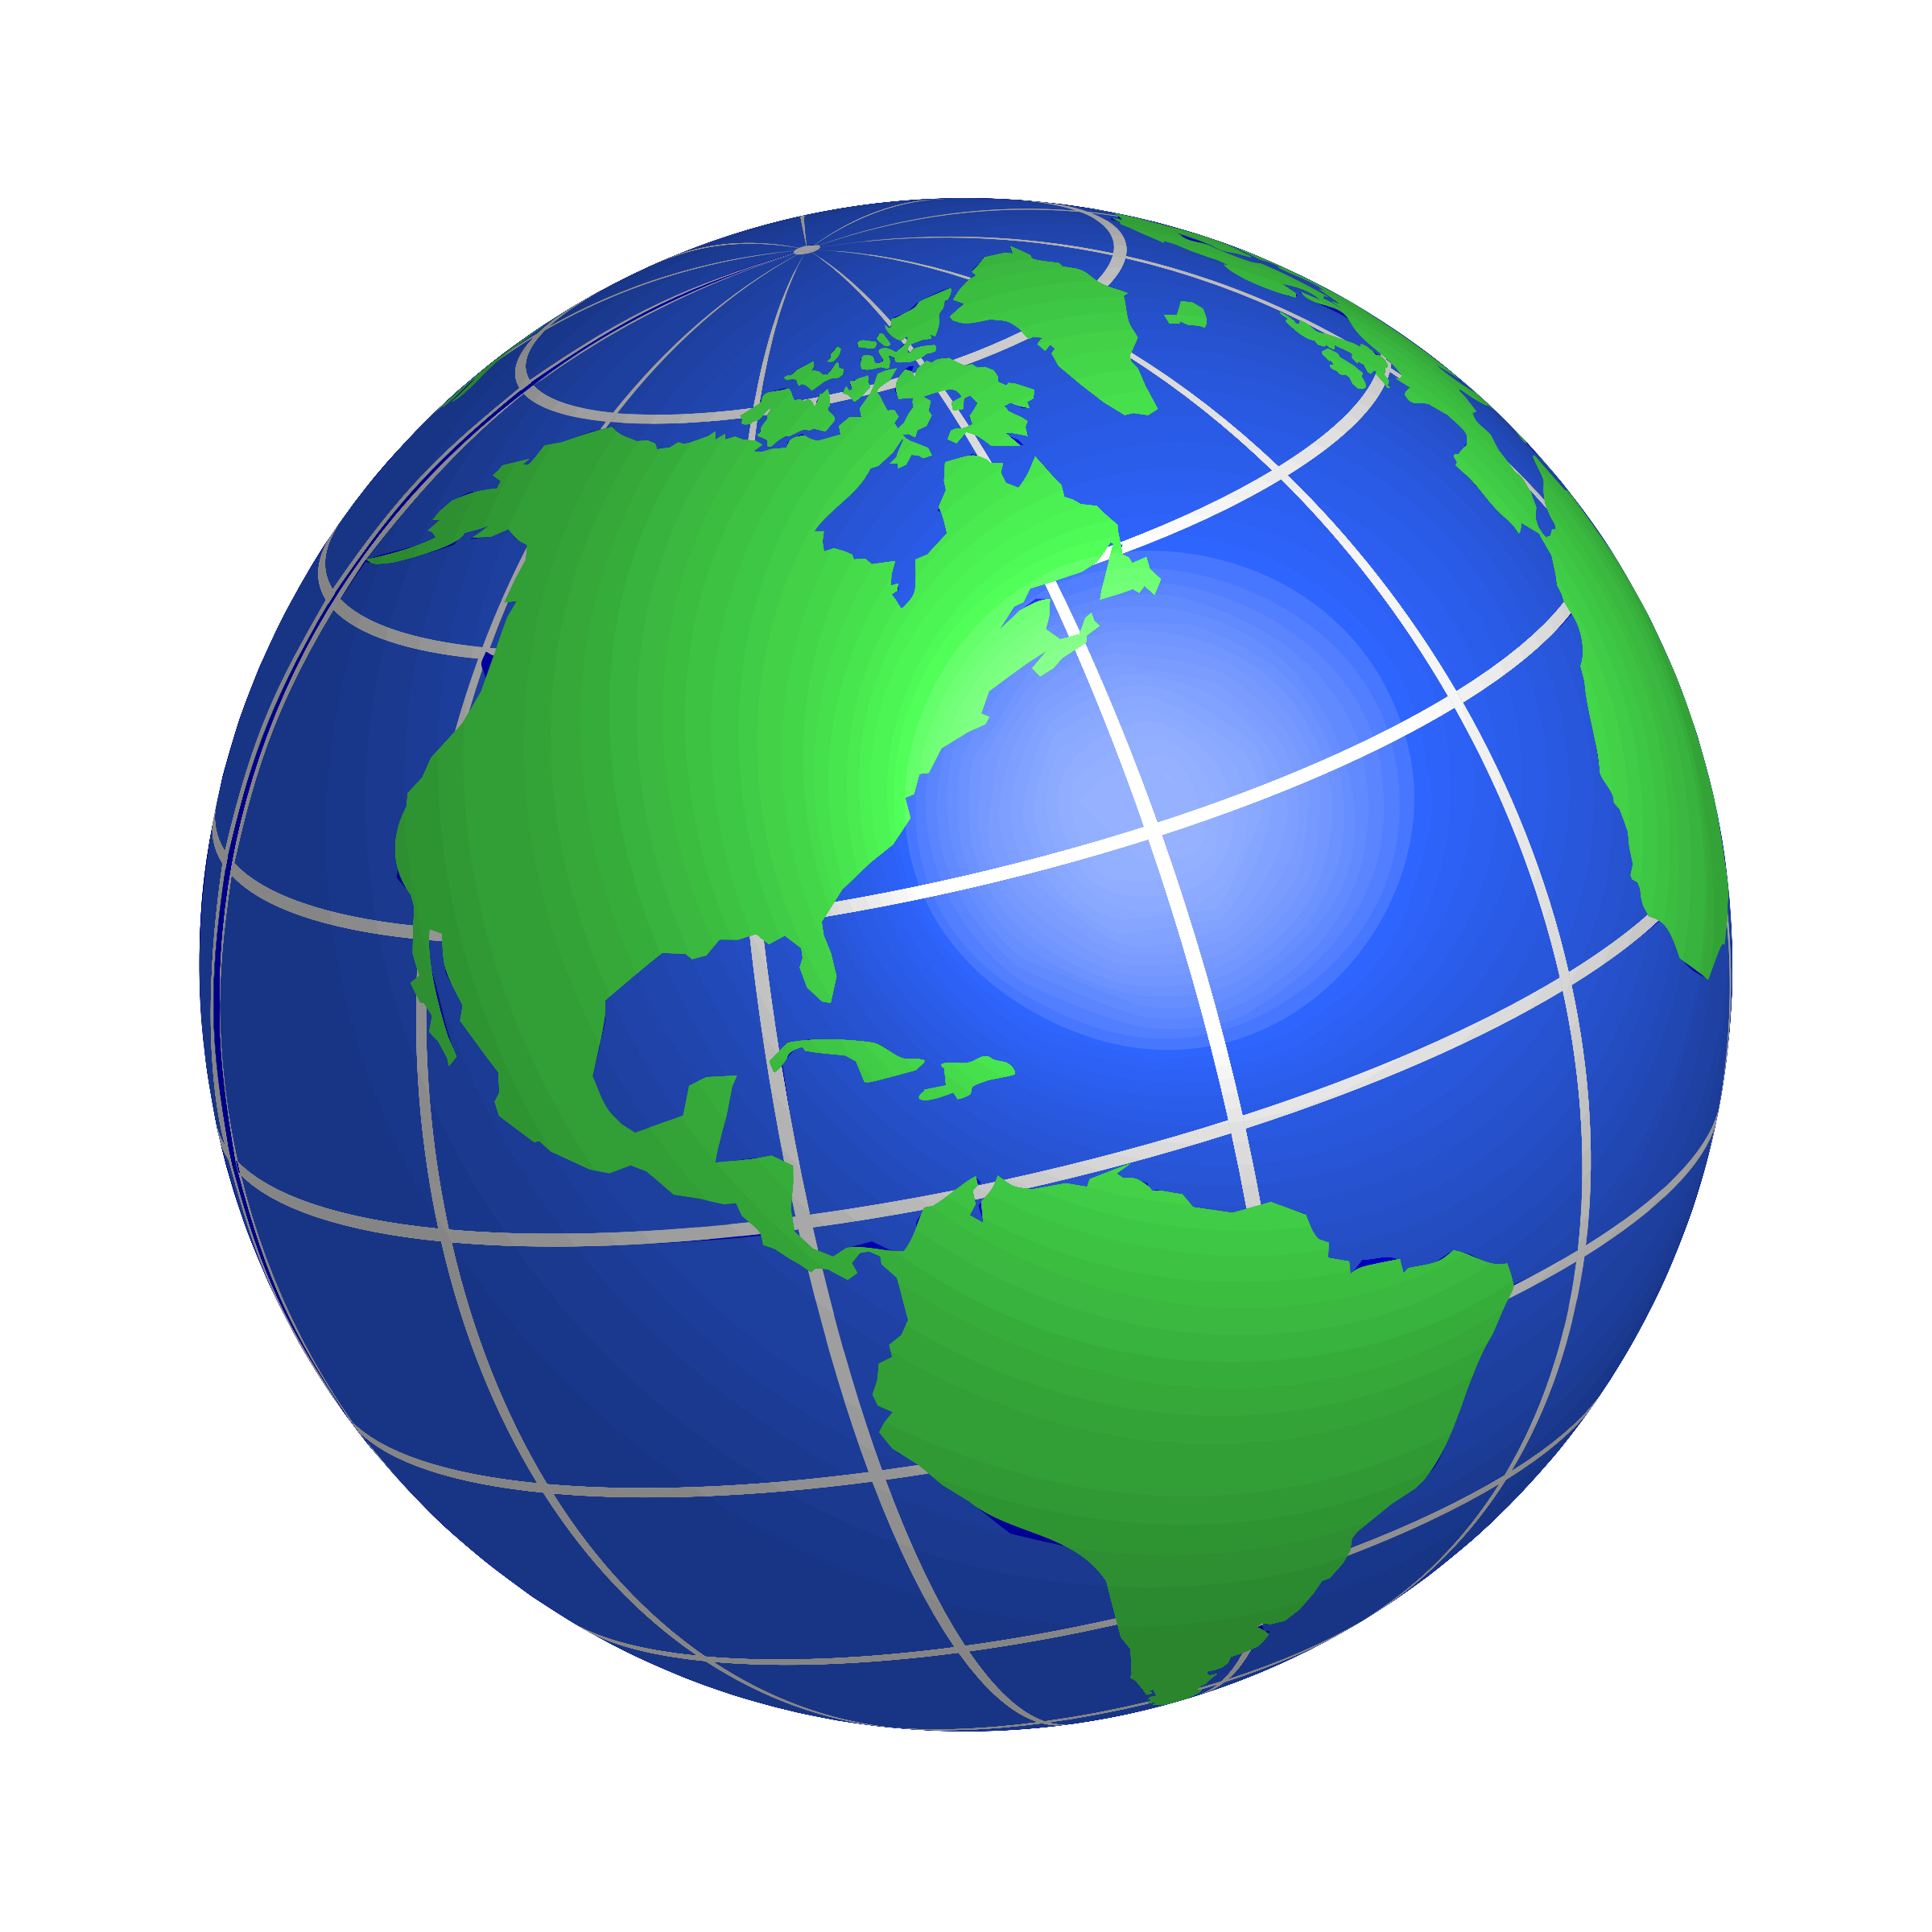 2400x2400 Globe Clipart Transparent Background